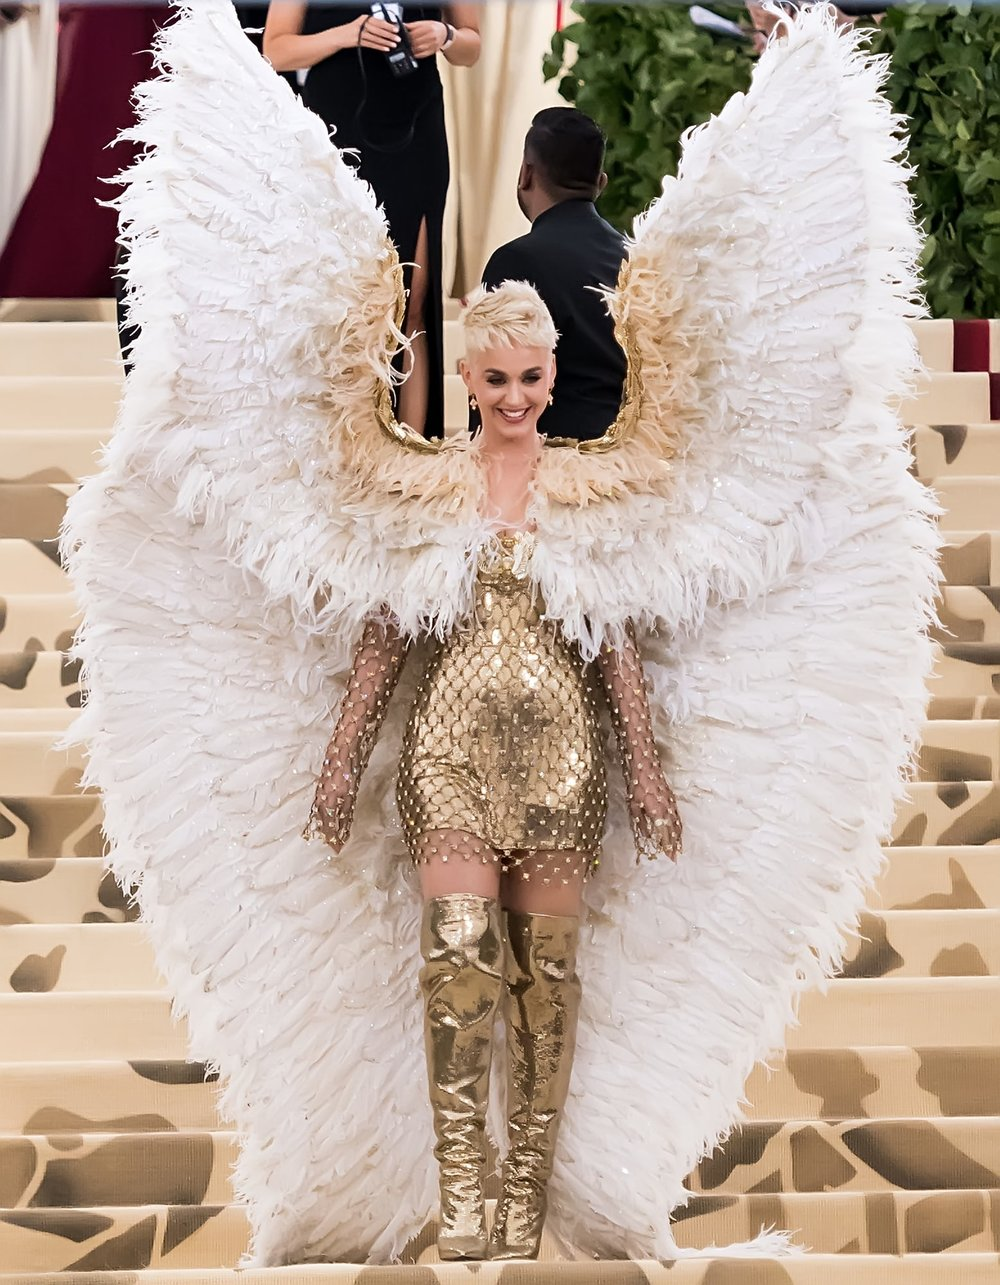 Katy Perry at the 2018 Met Gala this month.